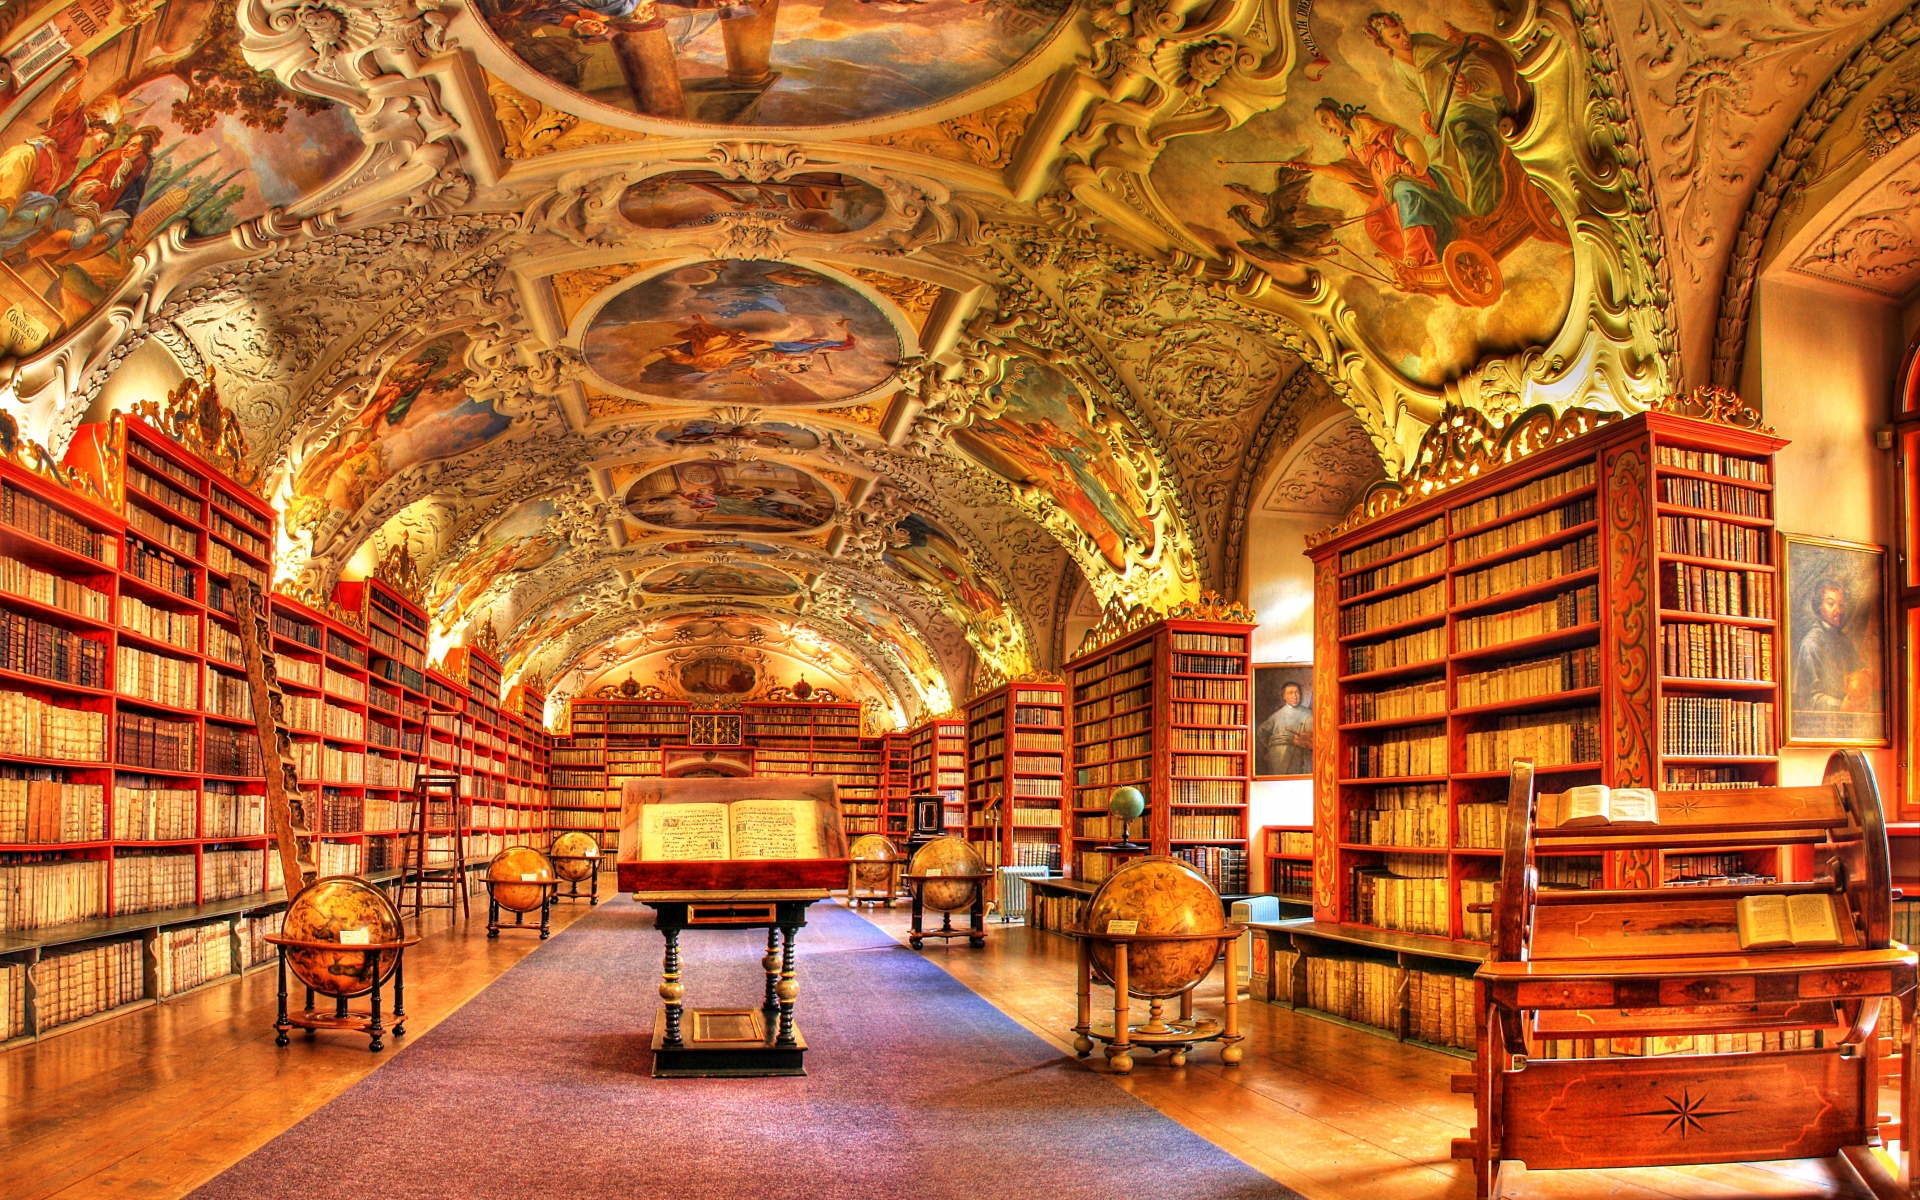 Hdr Photography Library Books Interior Design Wallpaper Background 1920x1200